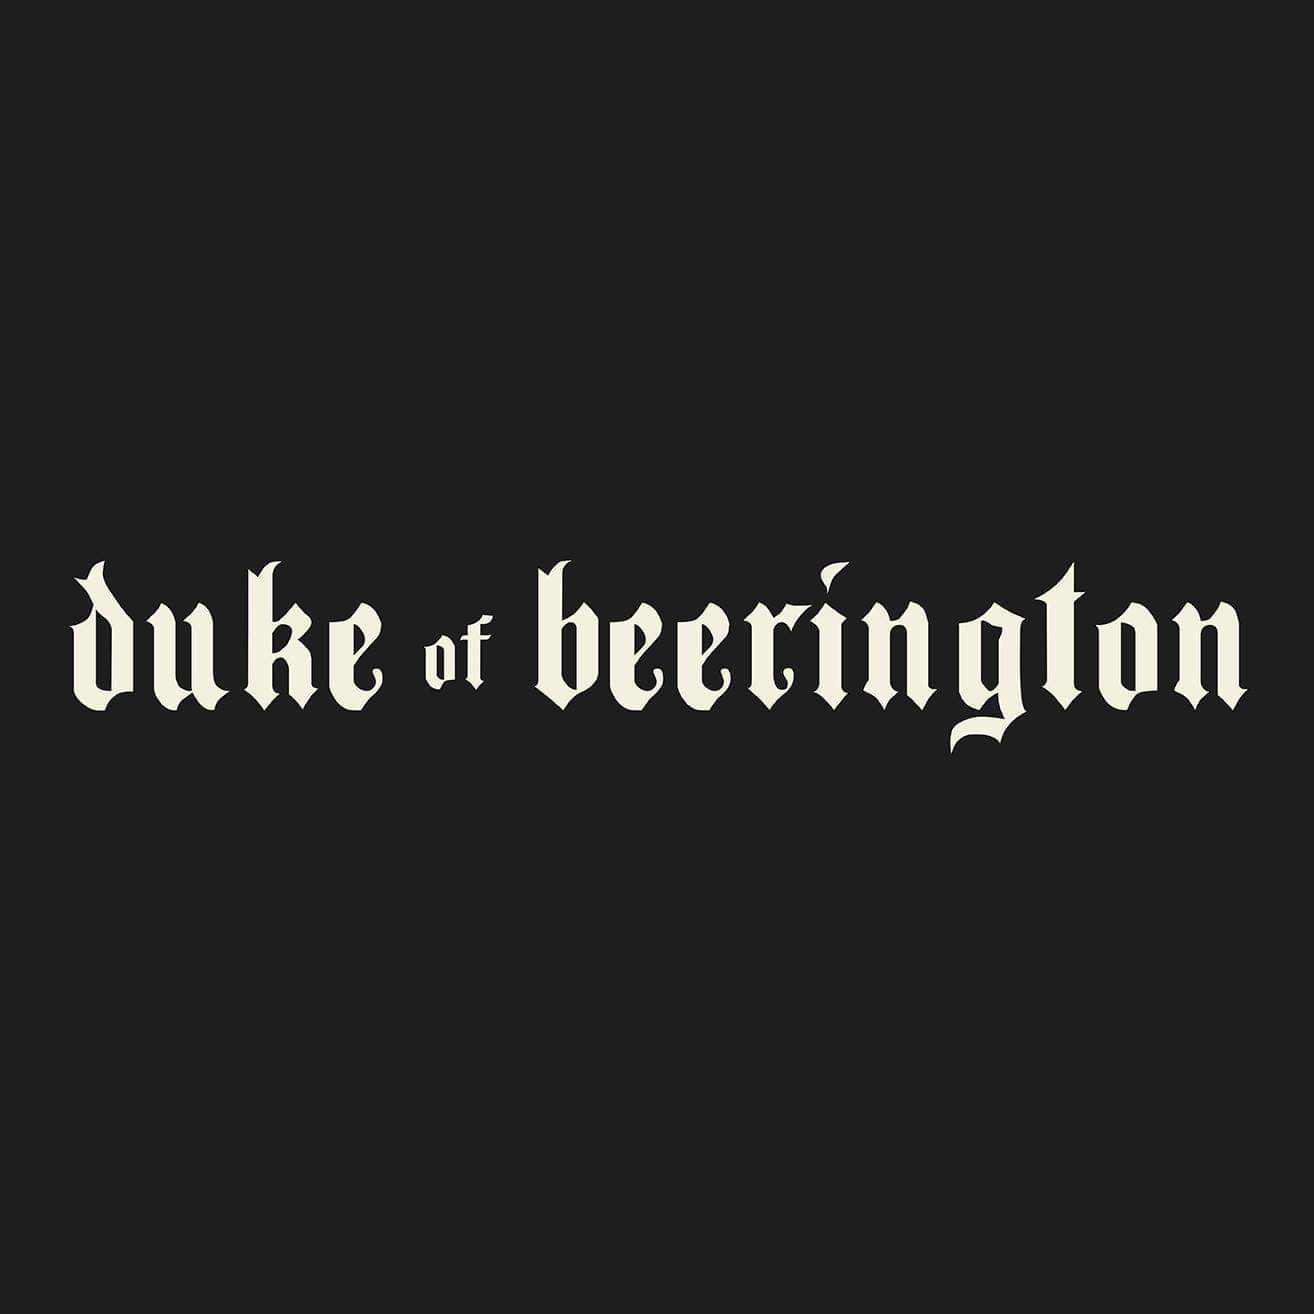 Duke of Beerington